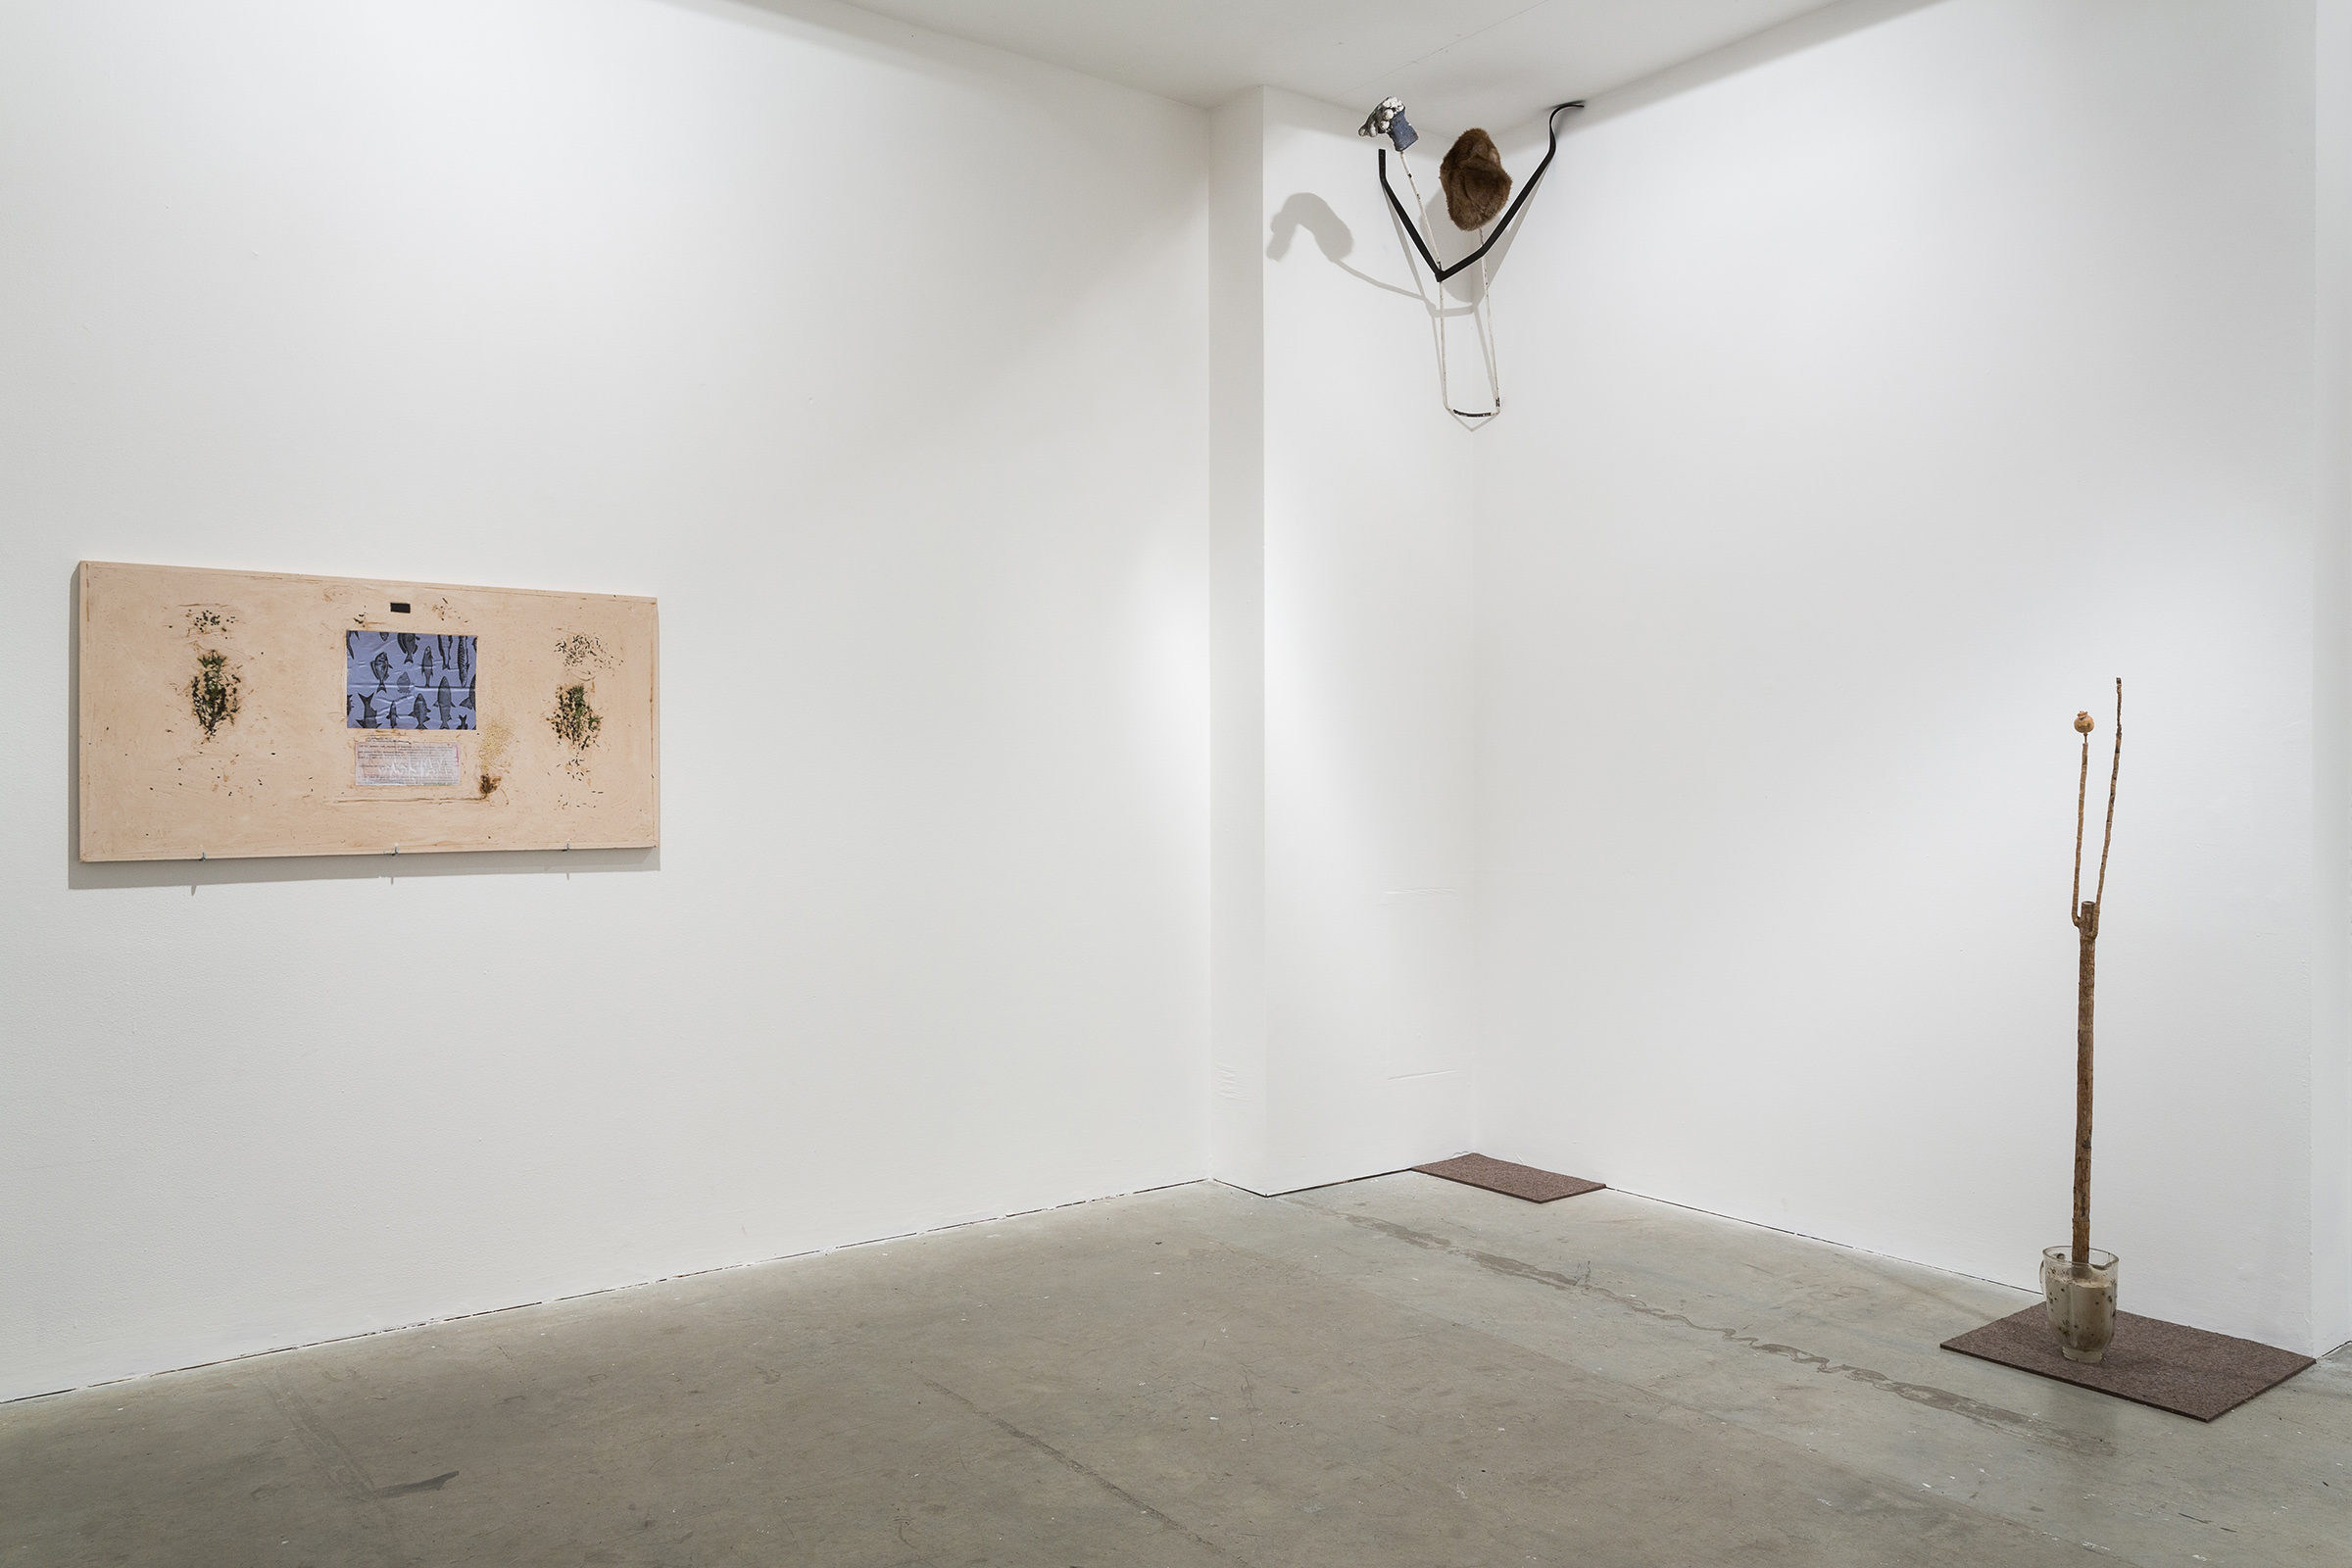 Now Panic, 2015, George Rippon, Vilma Gold, London, installation view. Now Panic , George Rippon